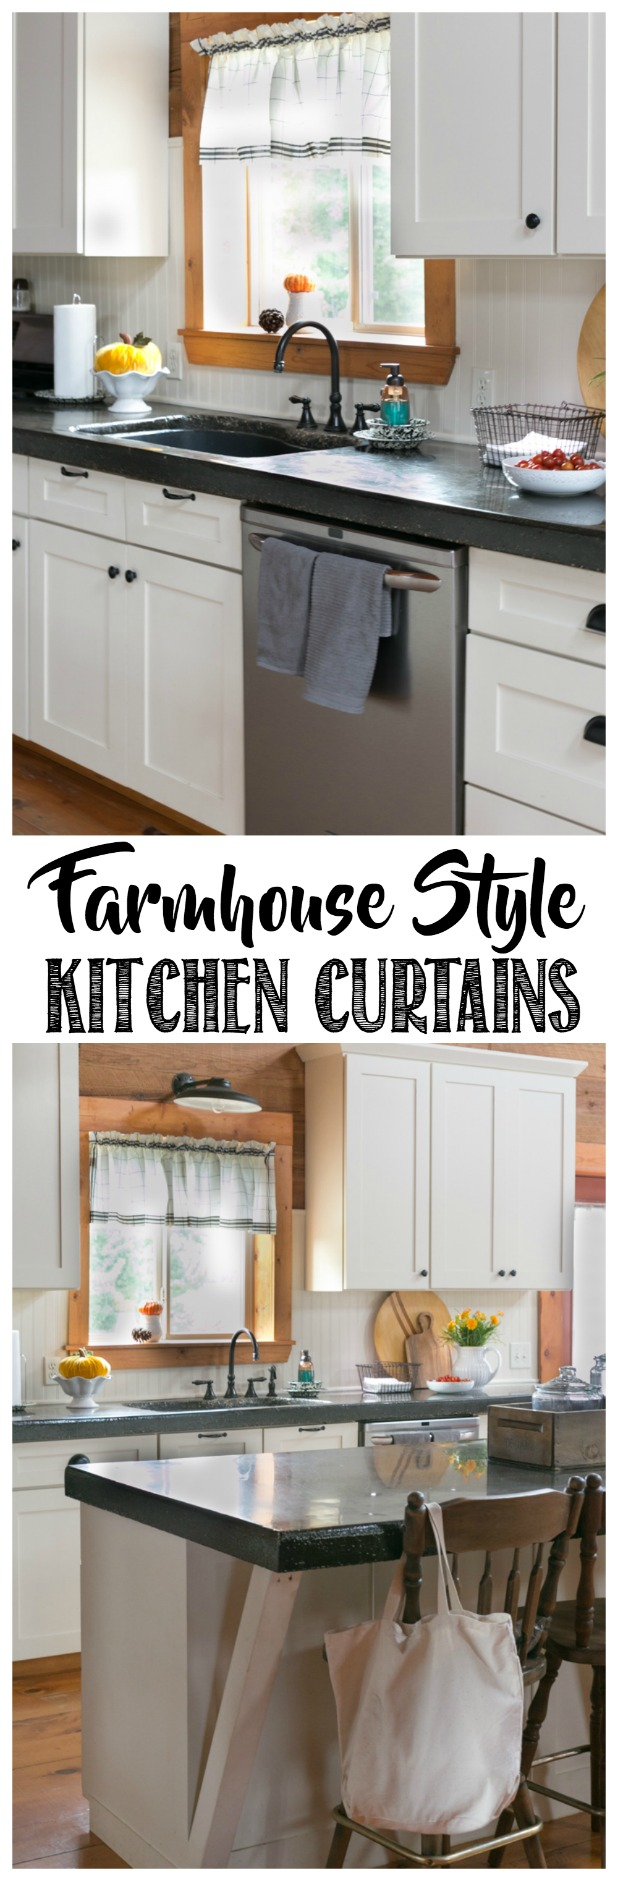 Farmhouse Style Kitchen Curtains